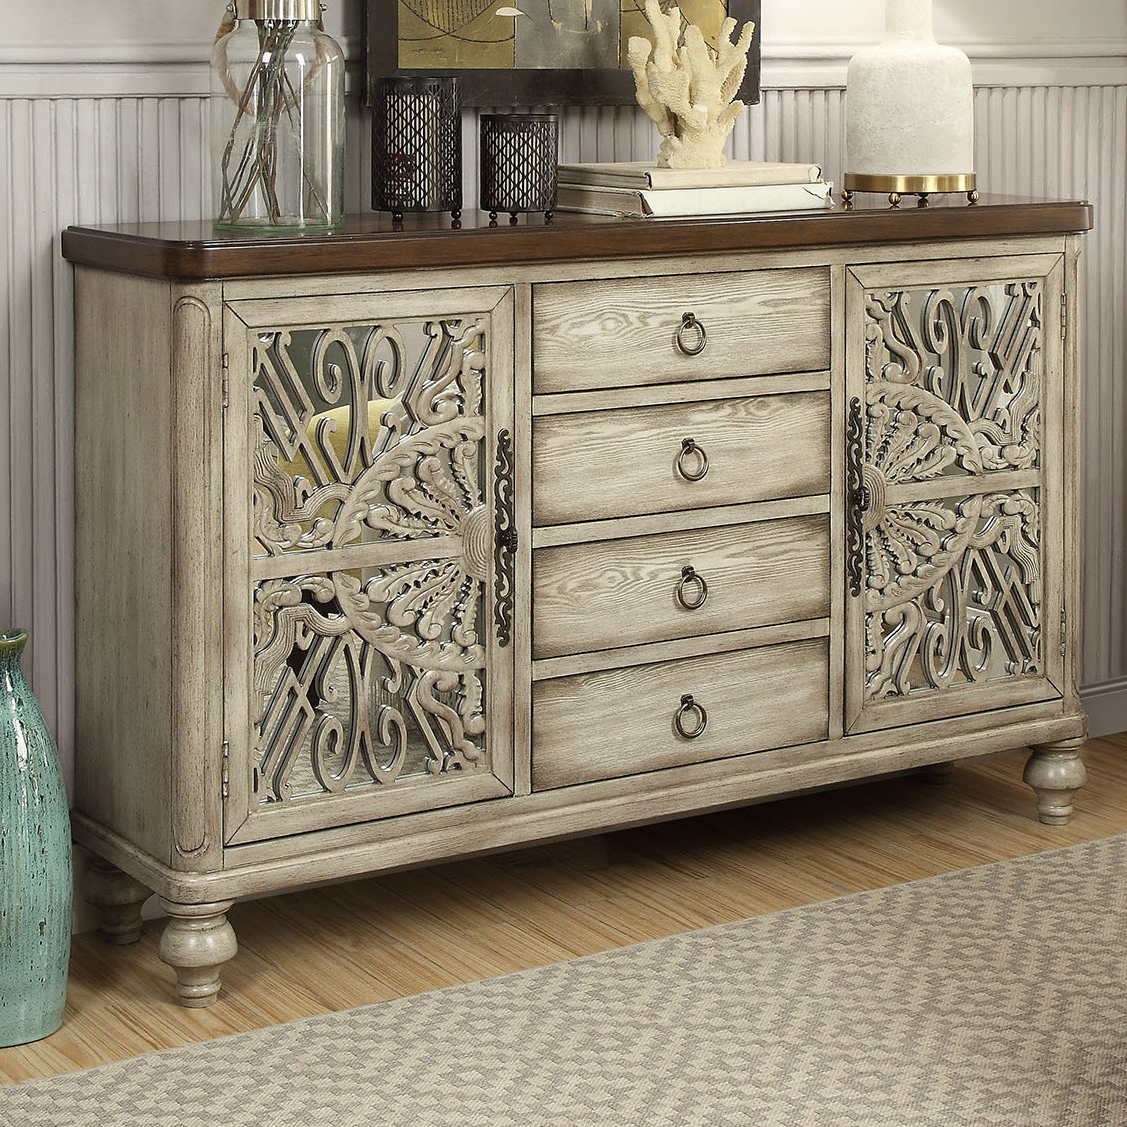 Dillen Sideboard & Reviews | Joss & Main For Knoxville Sideboards (View 14 of 20)